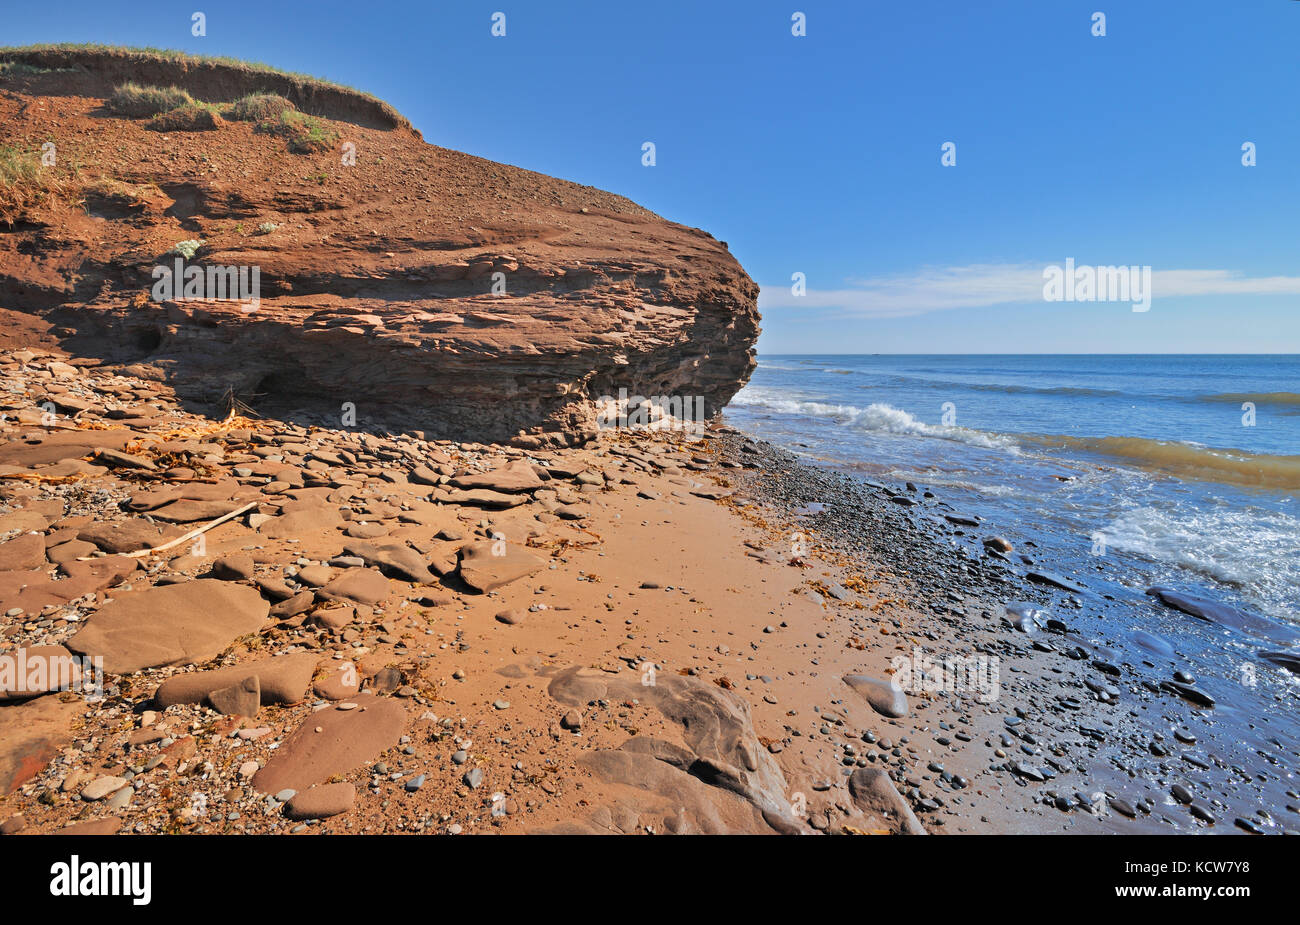 Waves lapping up on a beach, Lamèque Island, New Brunswick, Canada - Stock Image